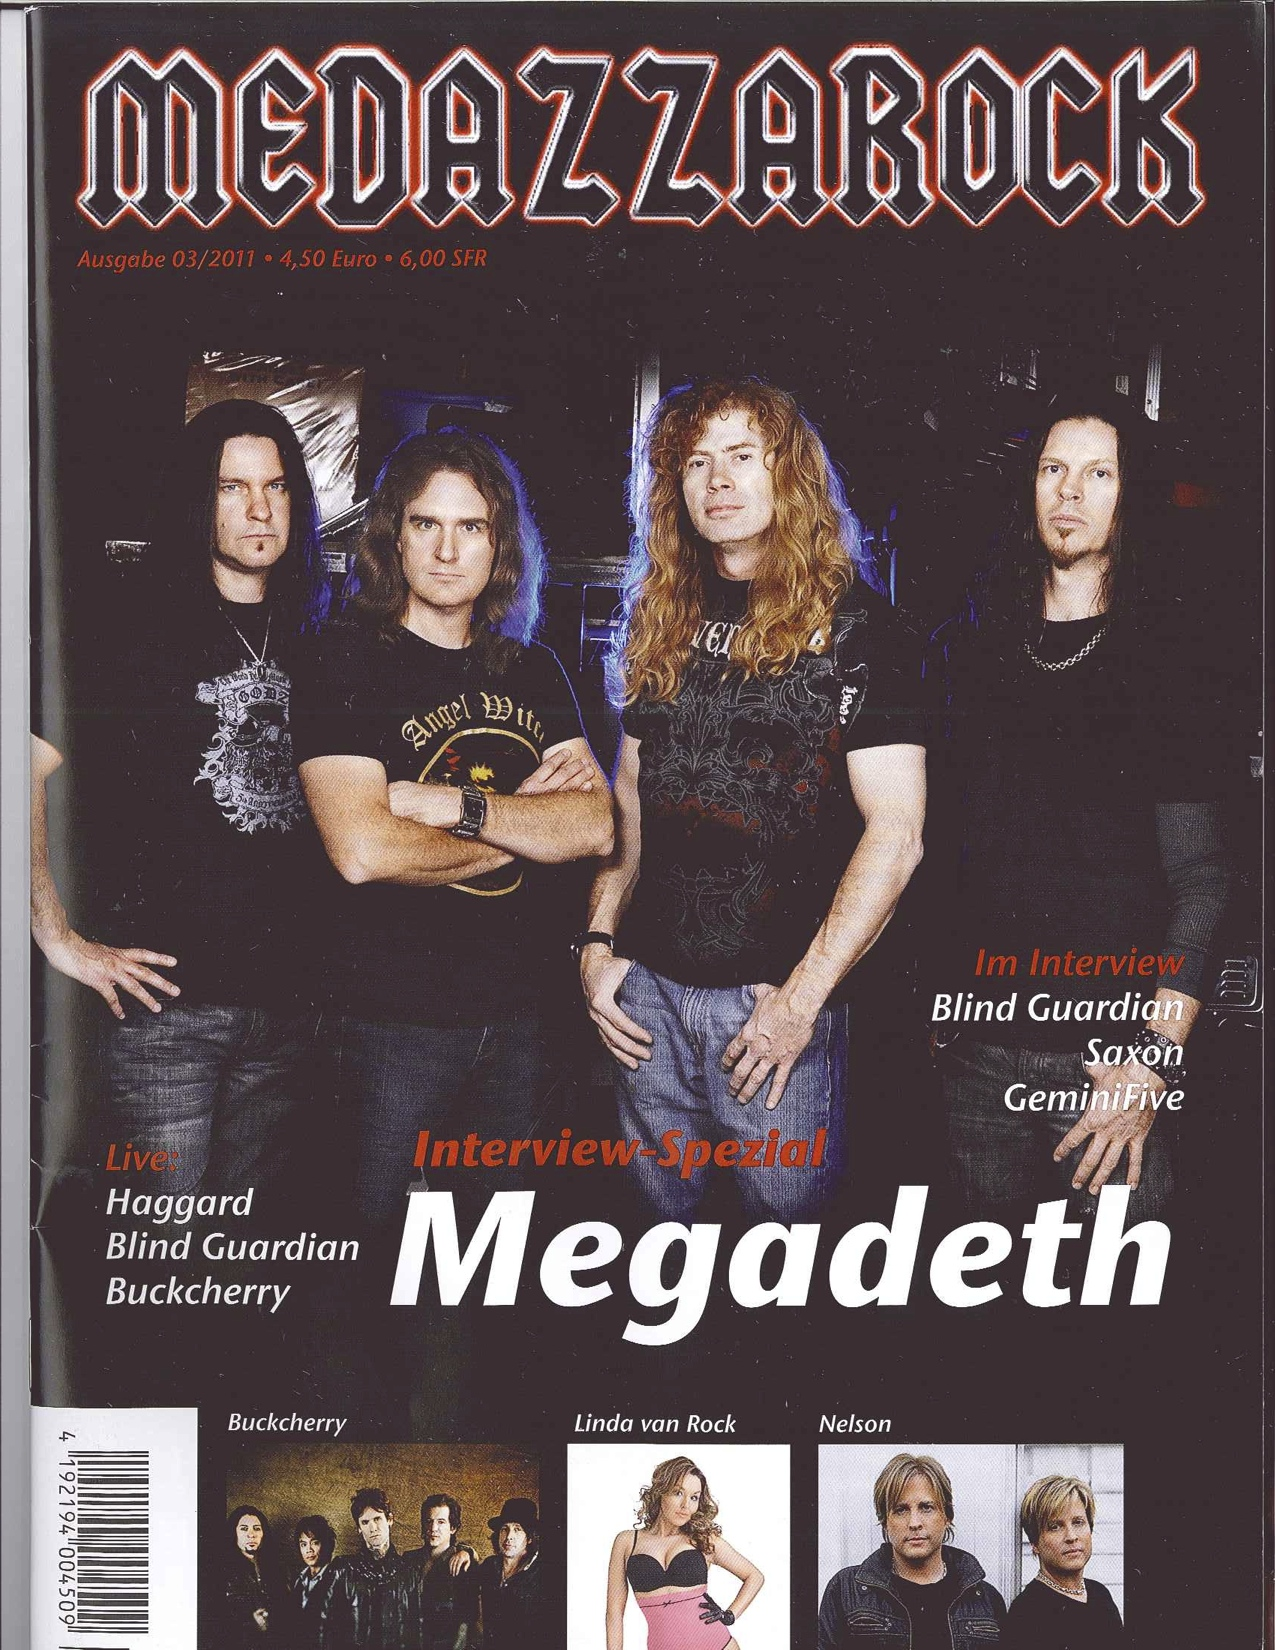 Nelson - cover of MEDAZZAROCK (German-Switzerland)